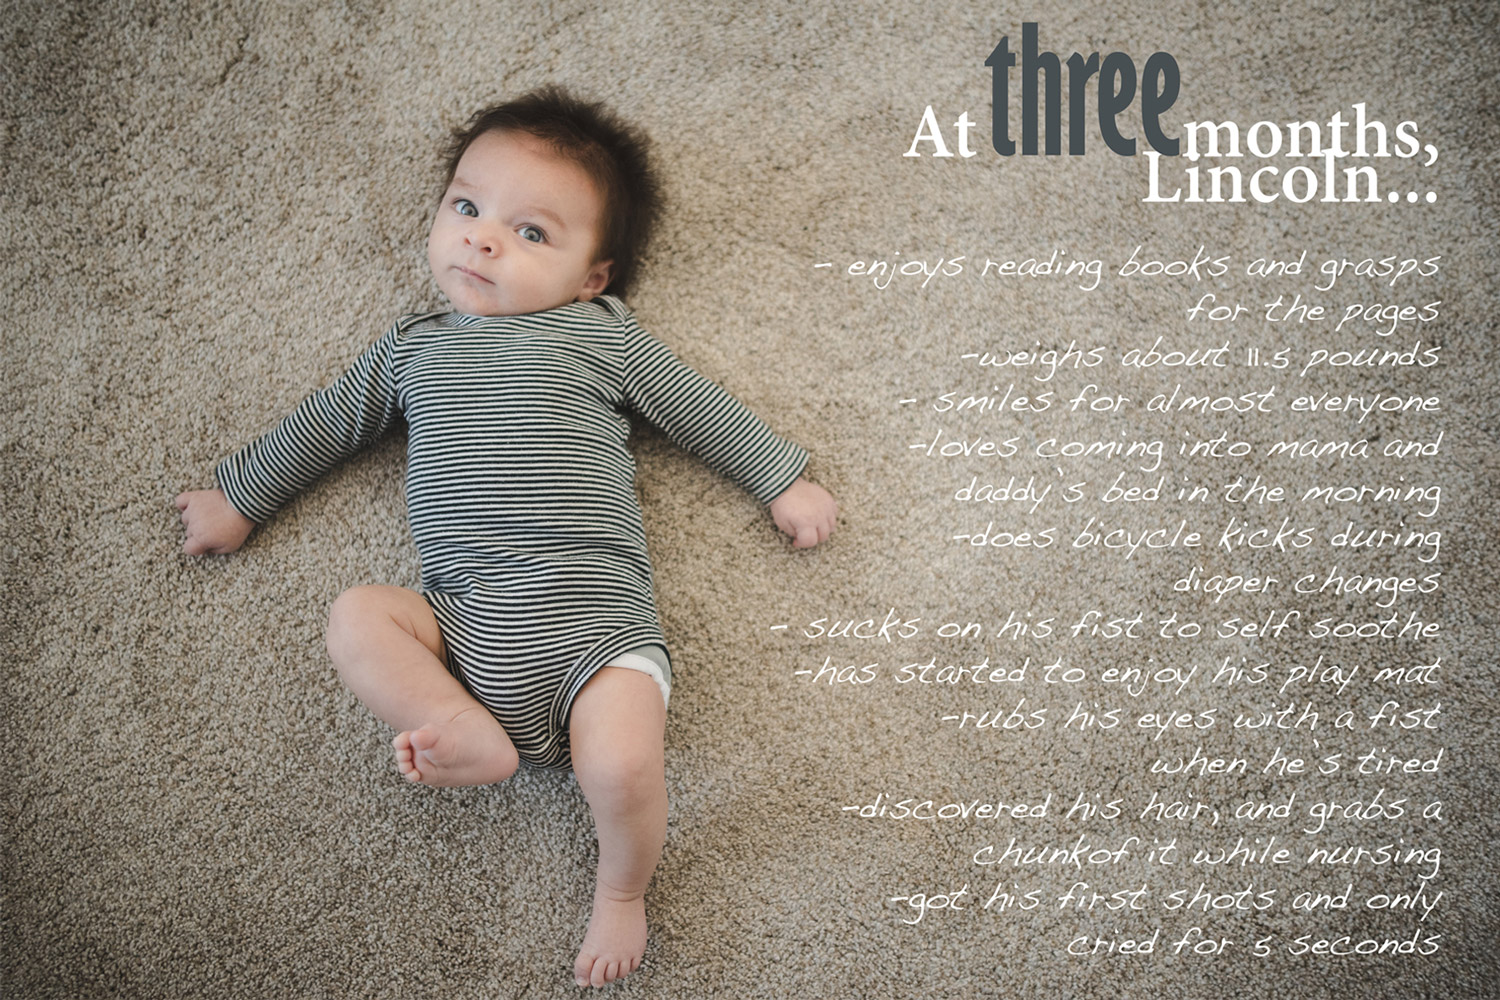 Baby Book image with text overlay, 3 month baby